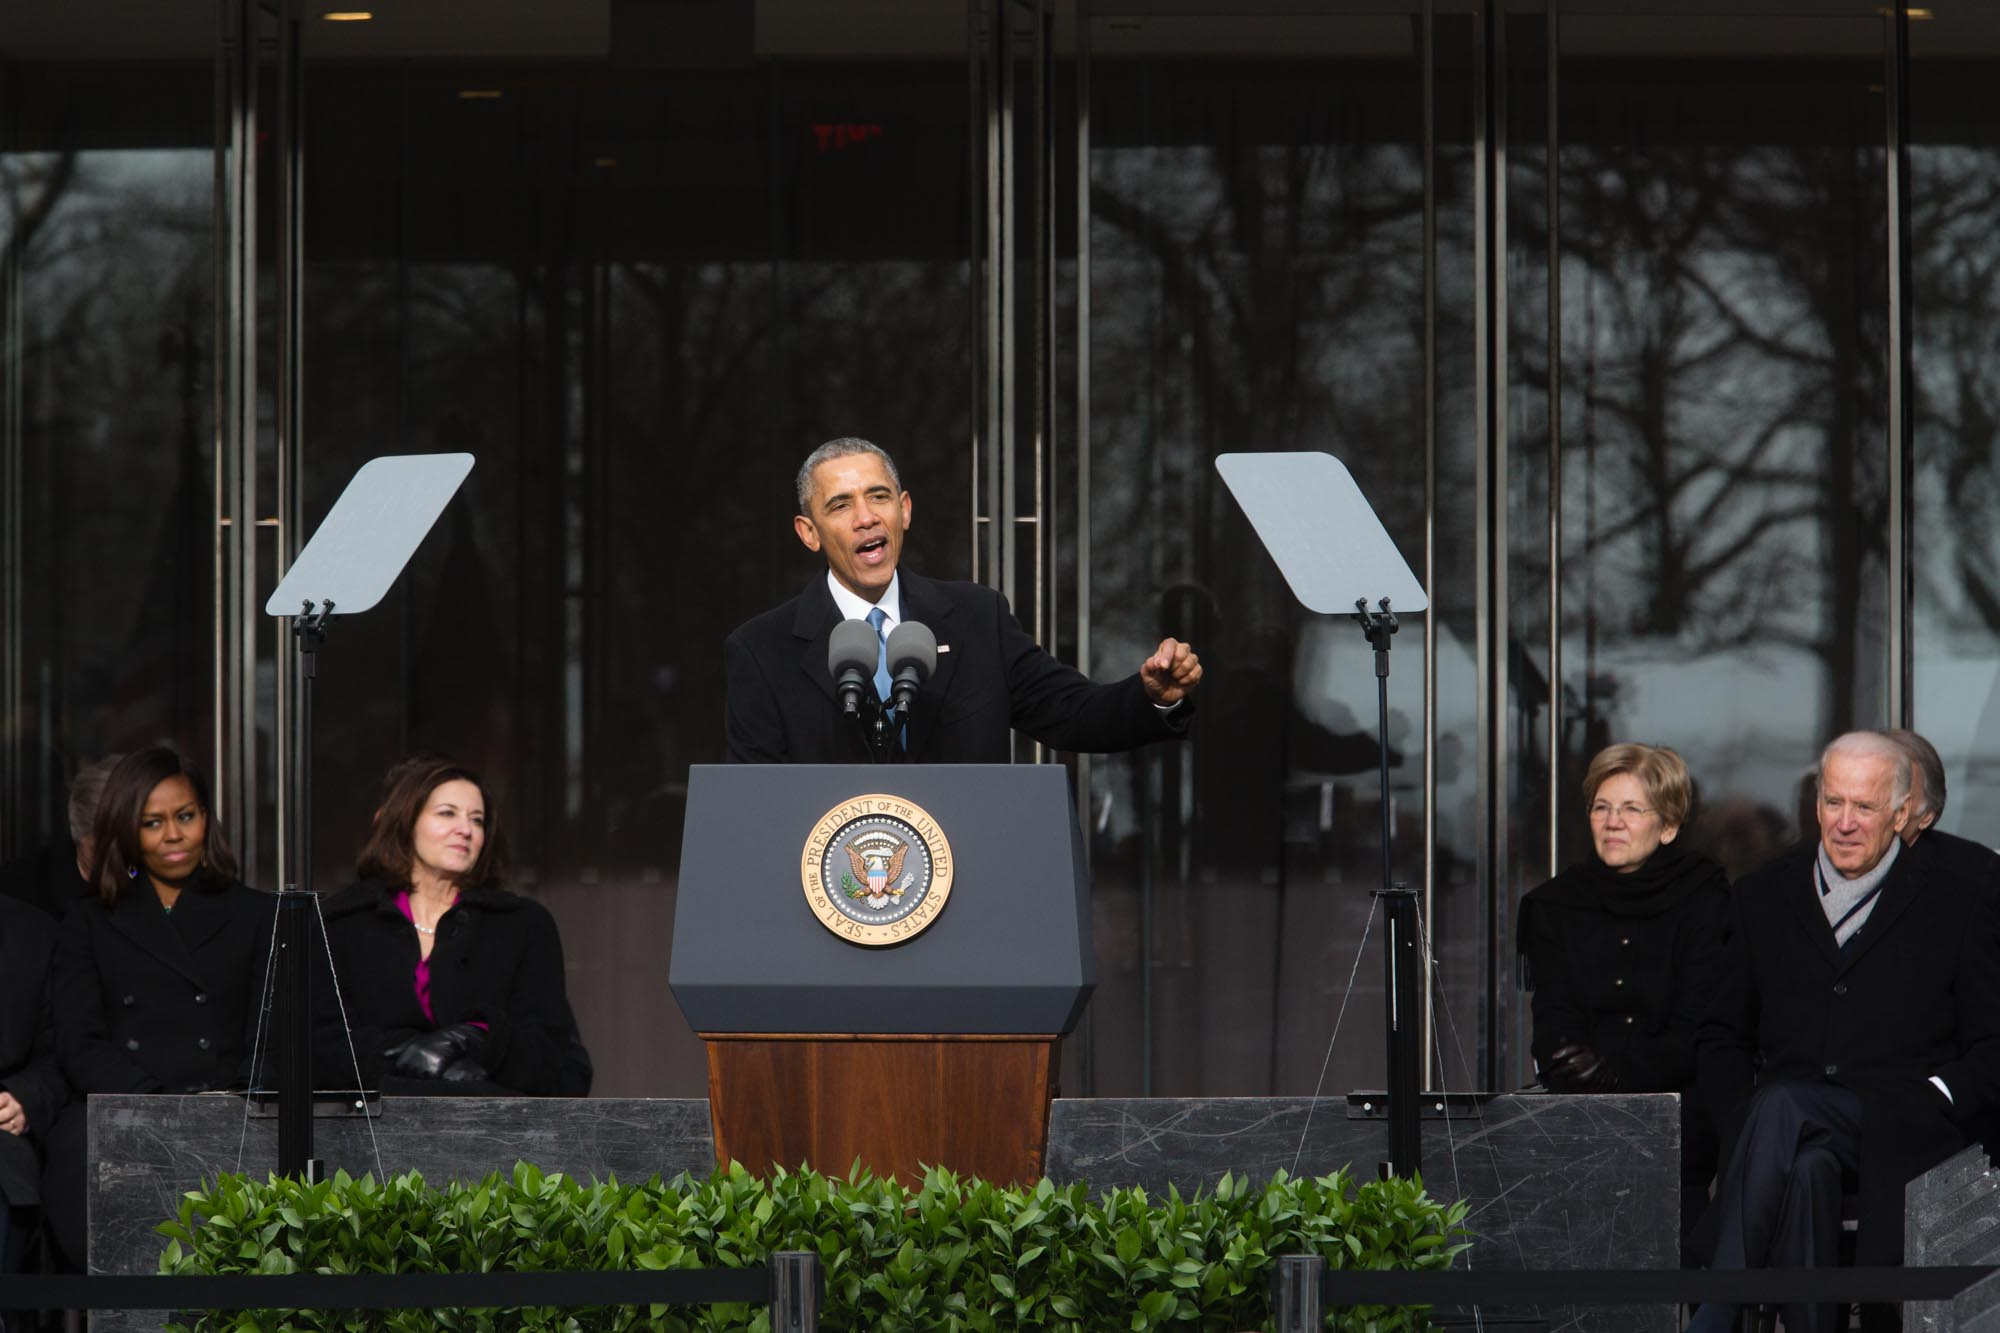 President Obama Speaks at the New Edward M. Kennedy Institute in Boston